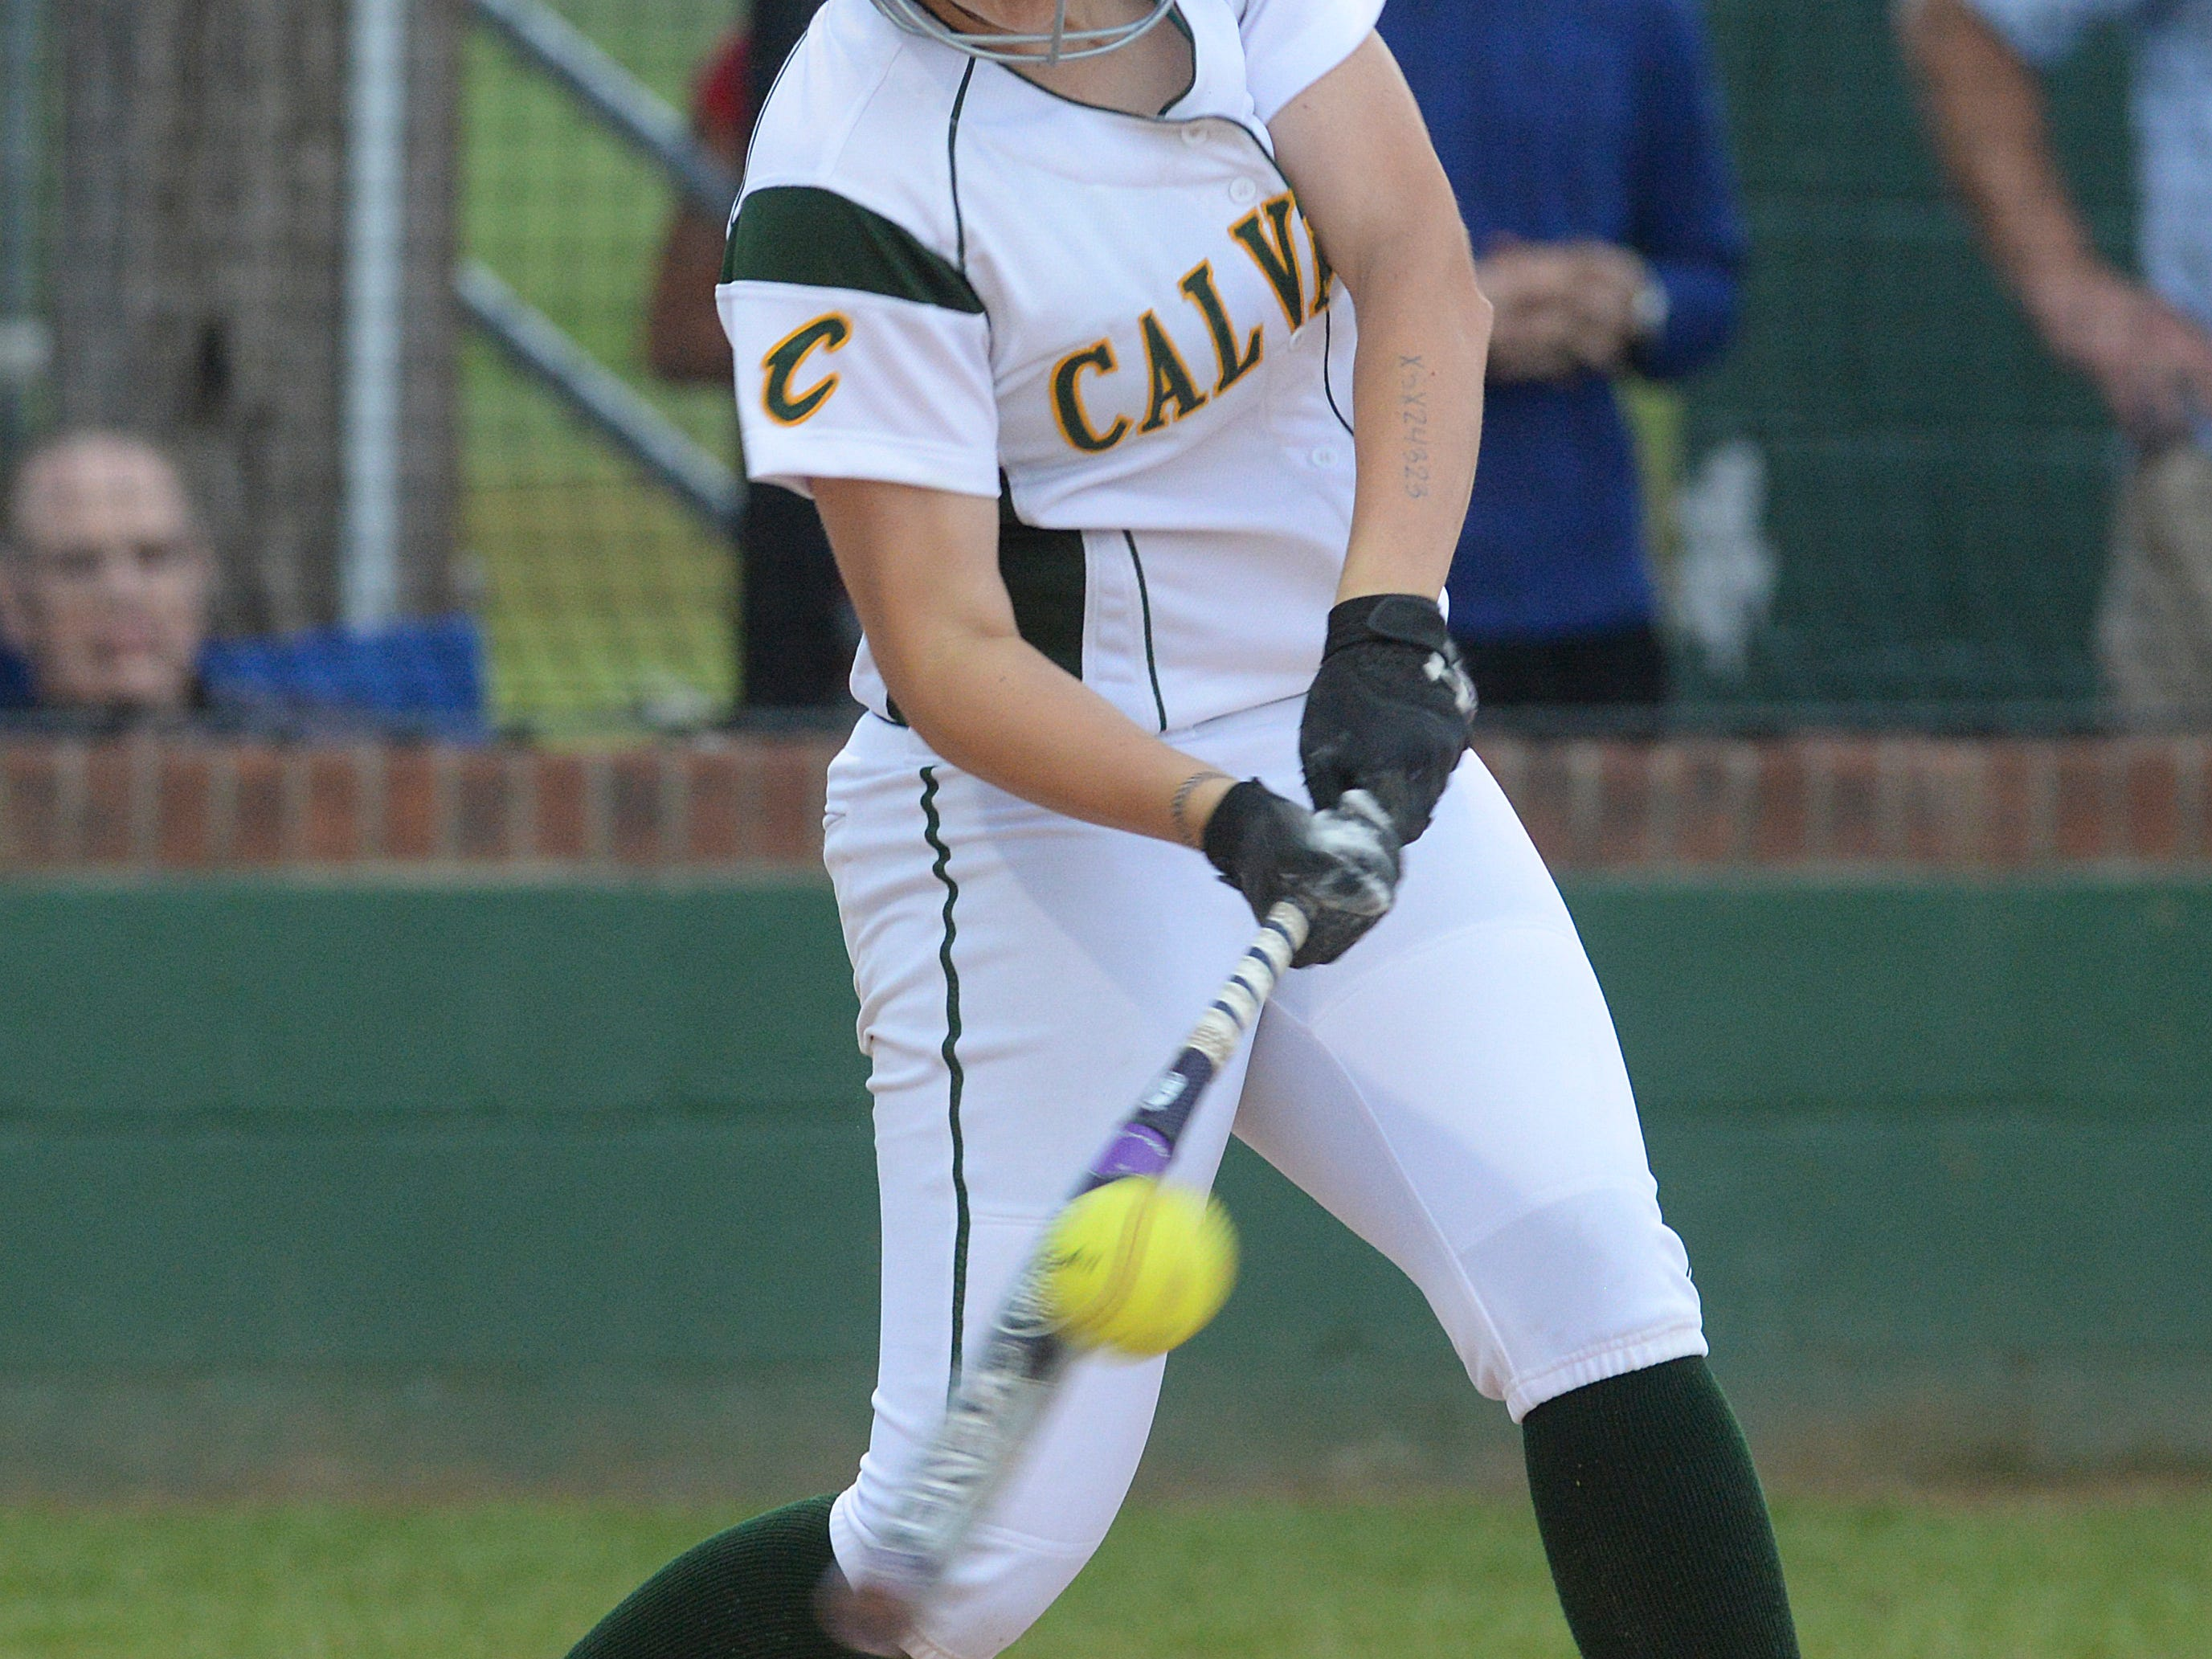 Calvary's Jordan Fielder hits a shoot to right field that scores Maggie Woodle and wins the game against Sterlington in their Class 2A softball playoff game.